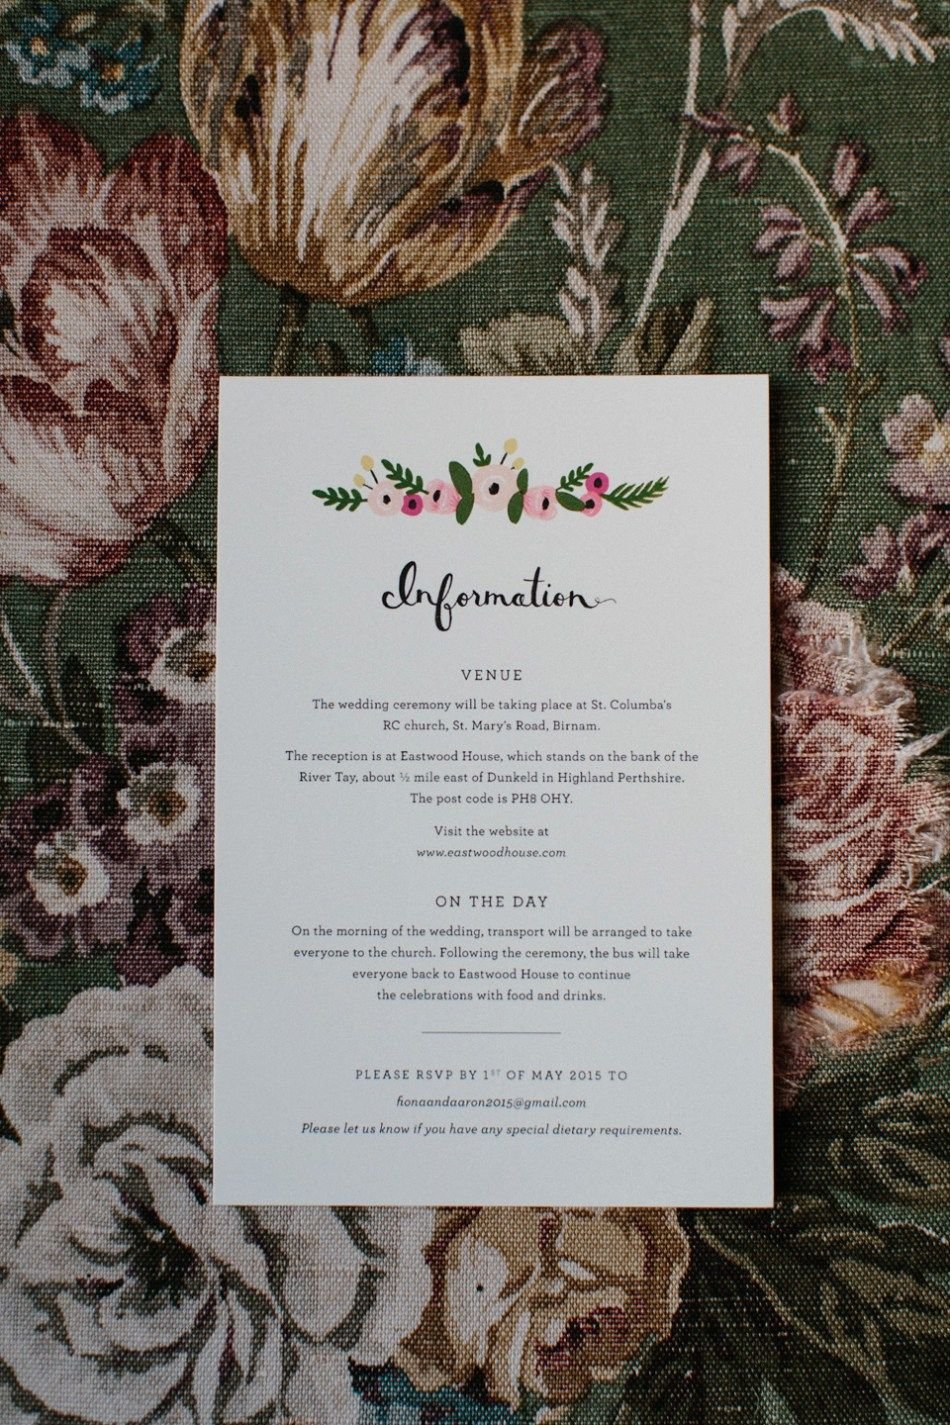 Rime Arodaky for a Relaxed, Informal, Fun and Flower-Filled Wedding ...